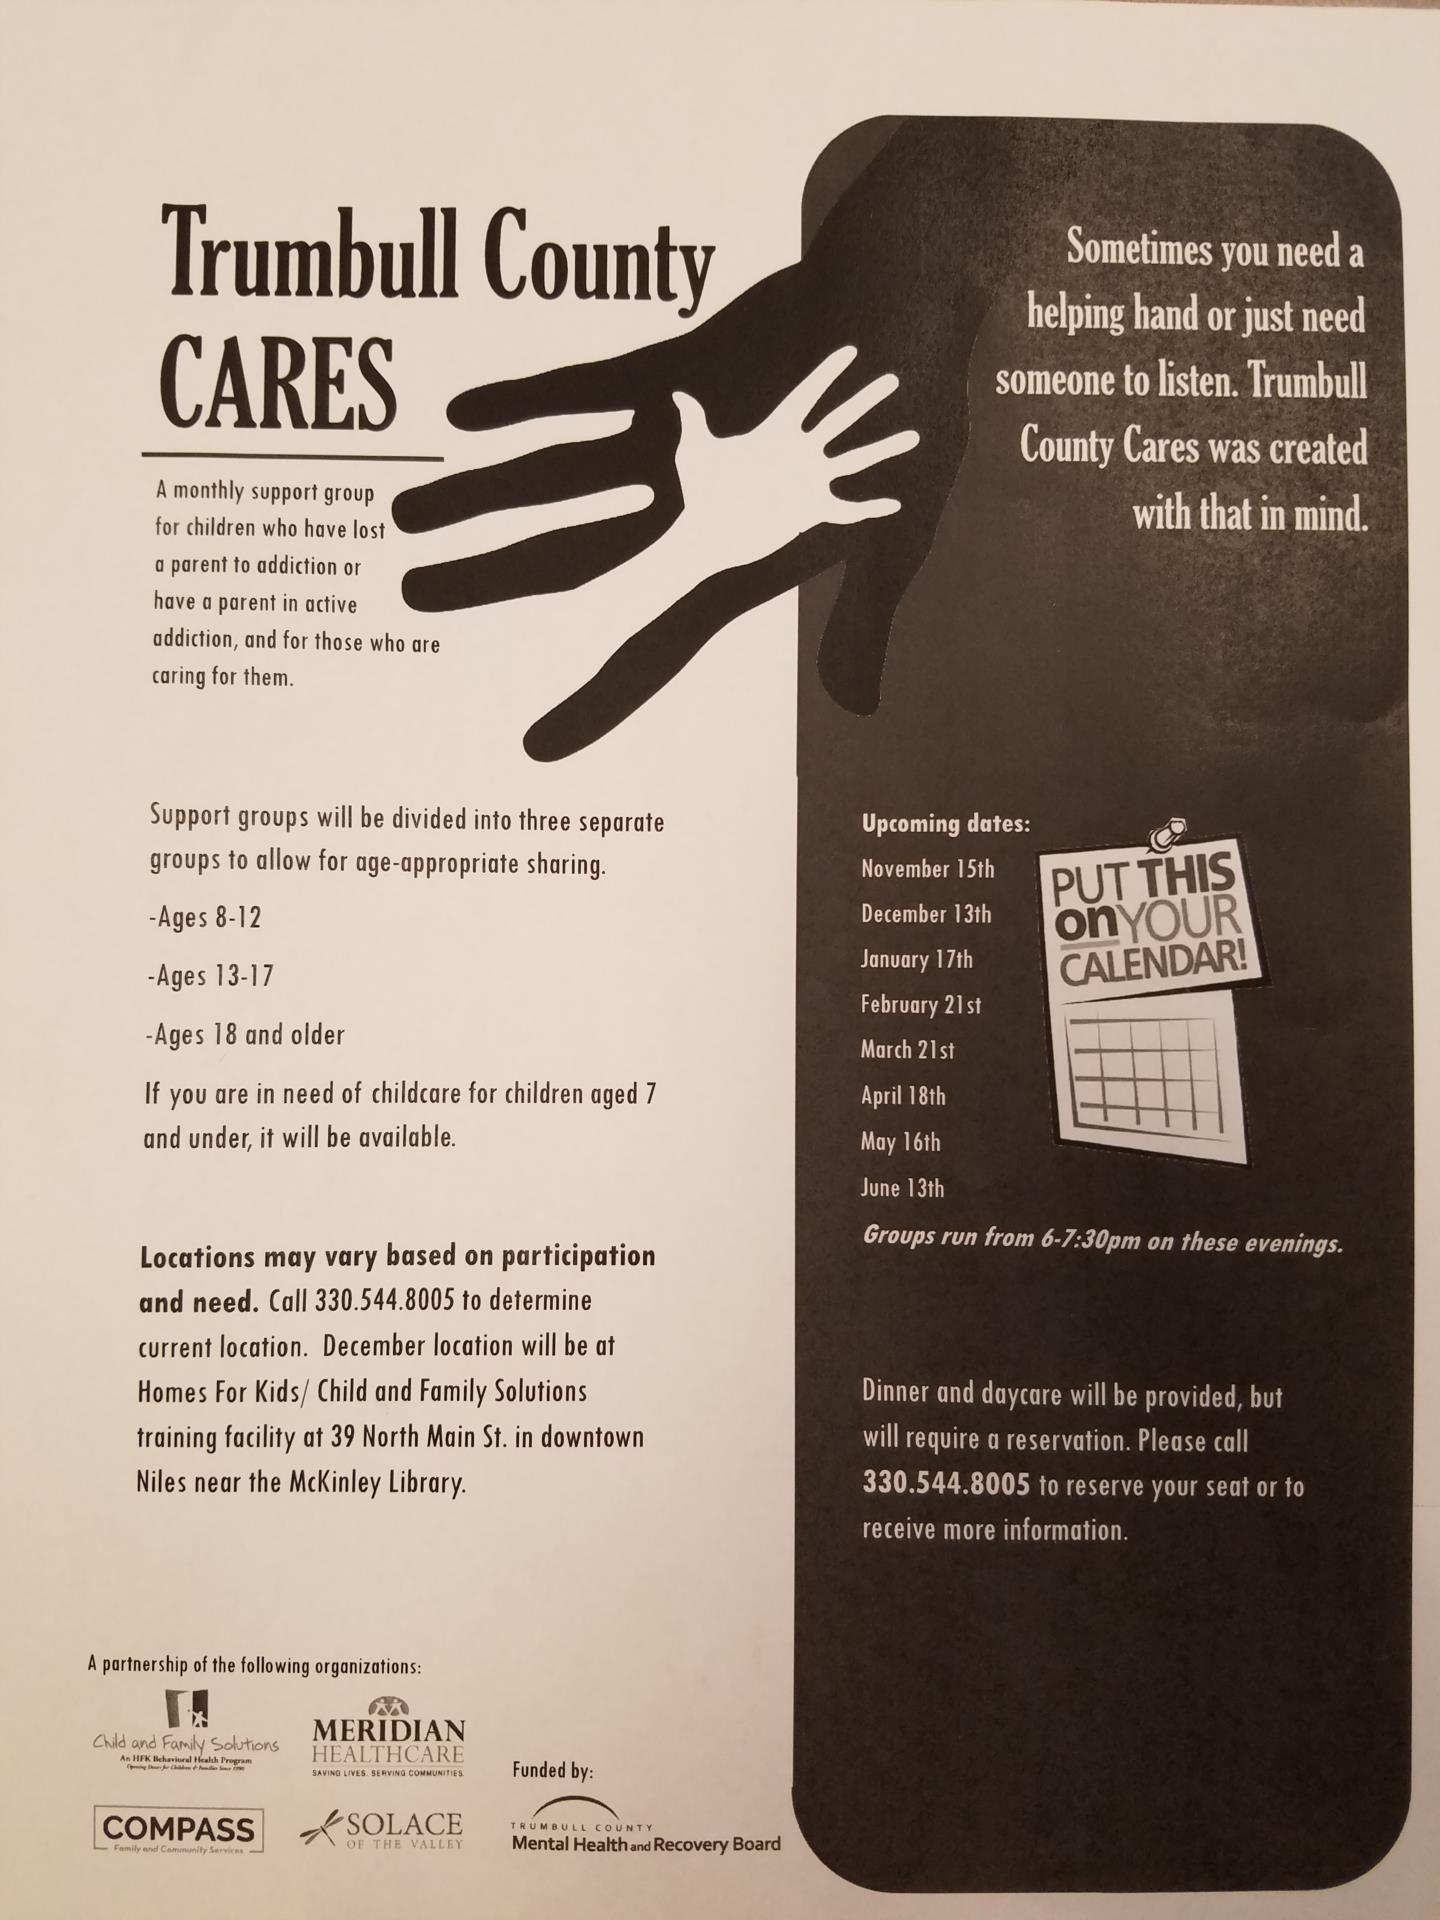 trumbull county cares